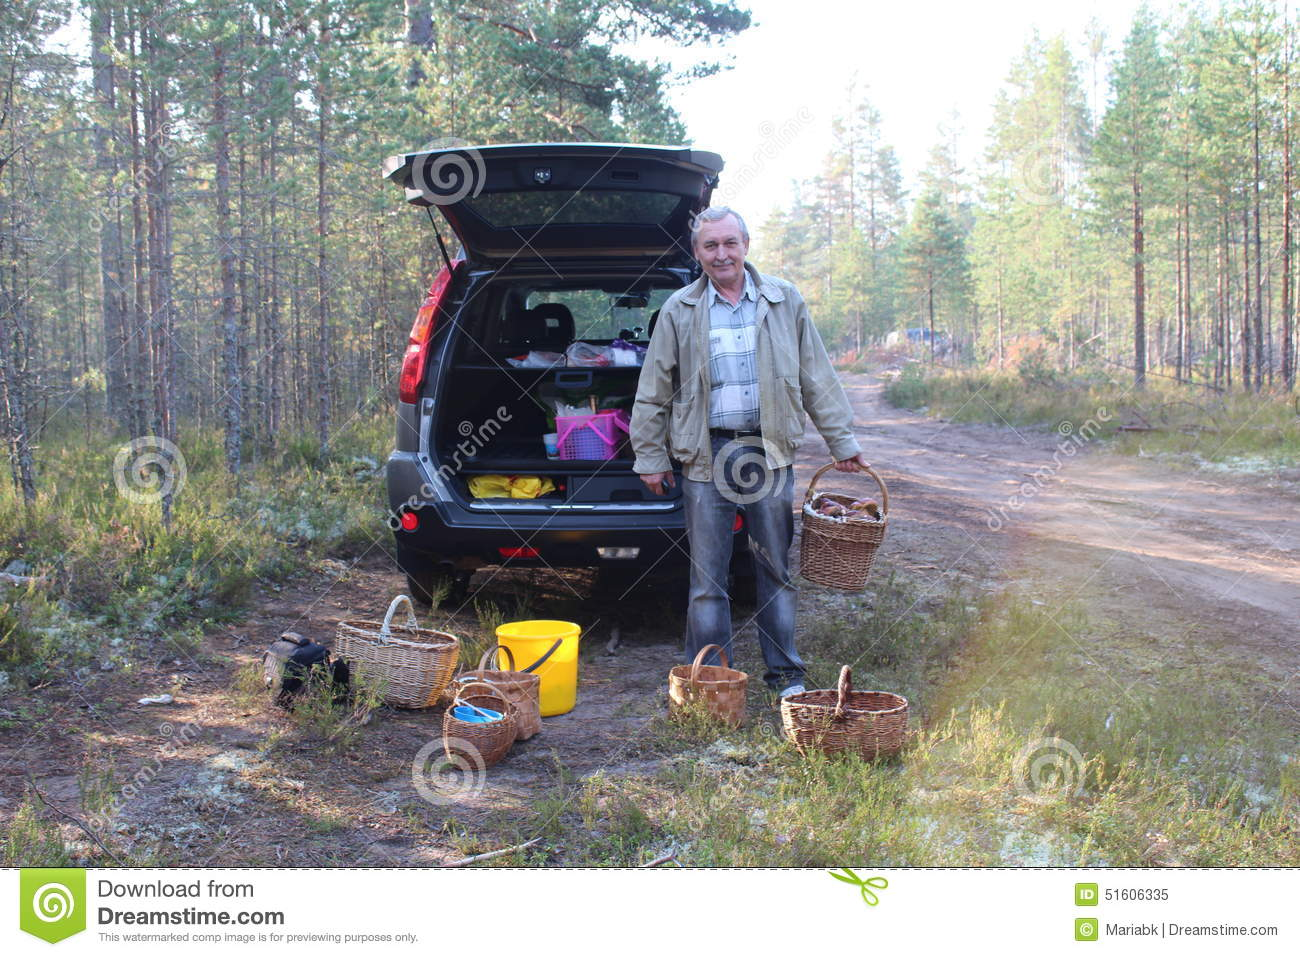 Man with a basket of cepes mushrooms in the forest and a car on background